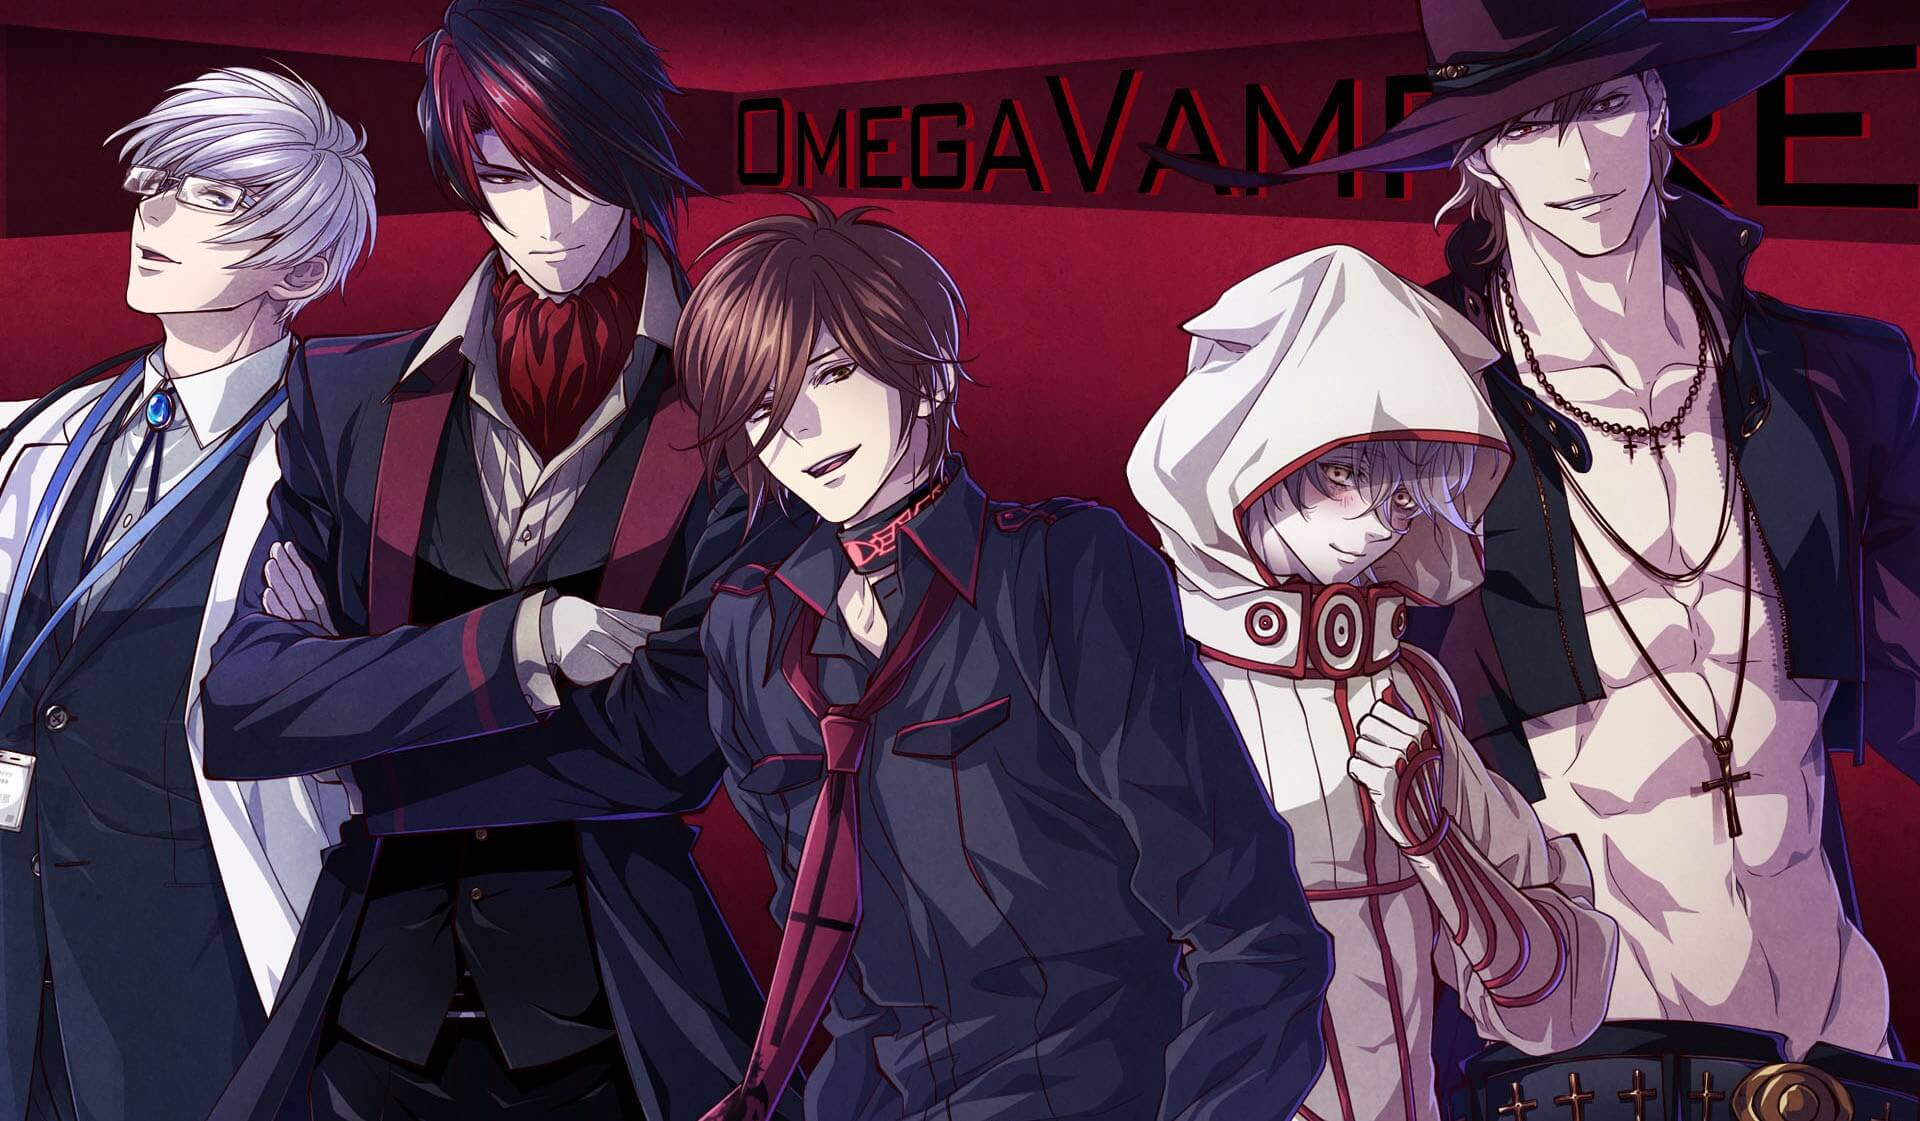 Rating-banned game Omega Vampire coming to Switch - TechSpot